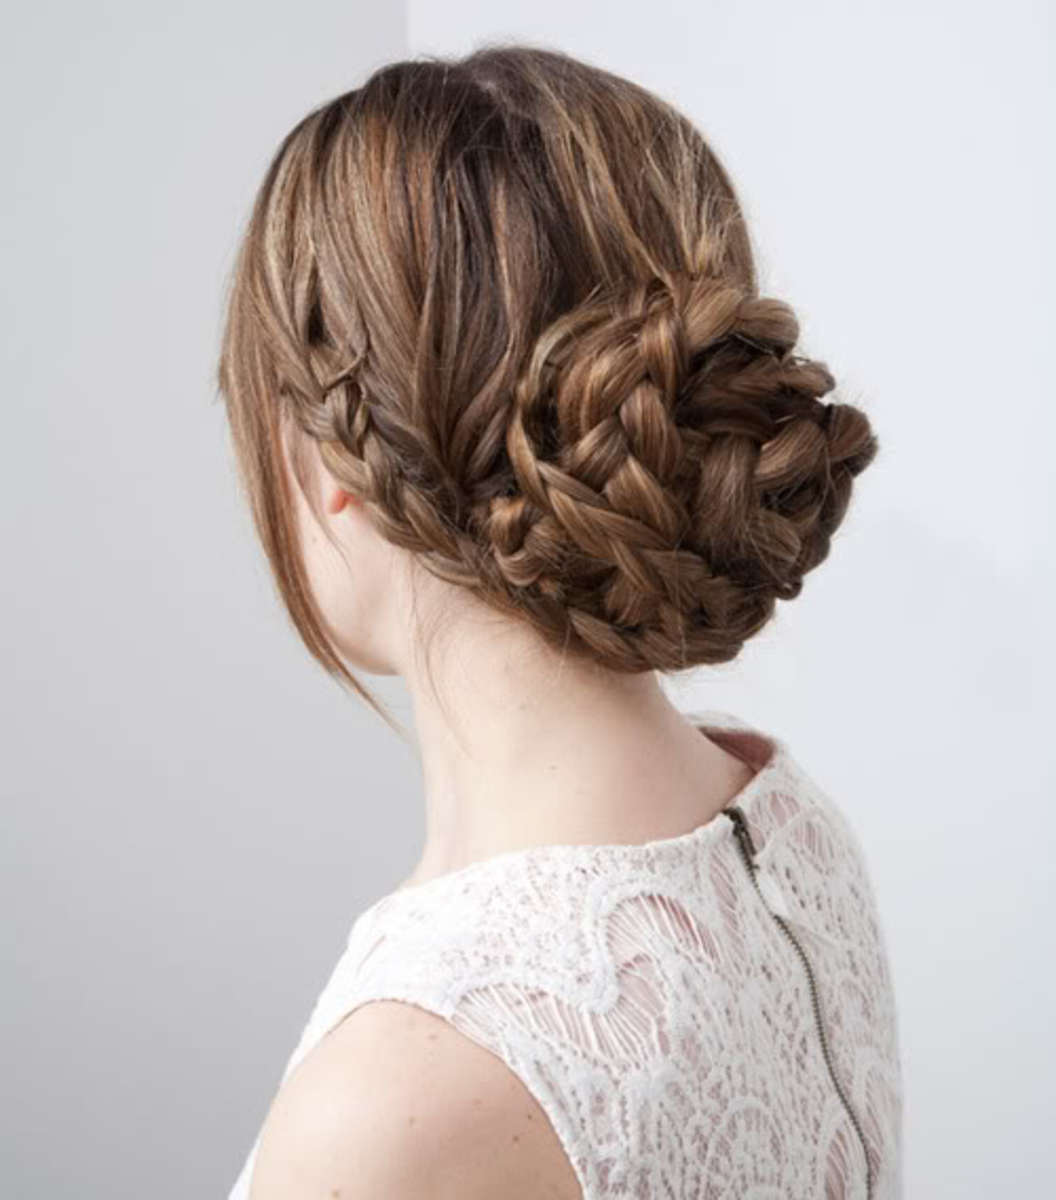 Braided bun with side French braid